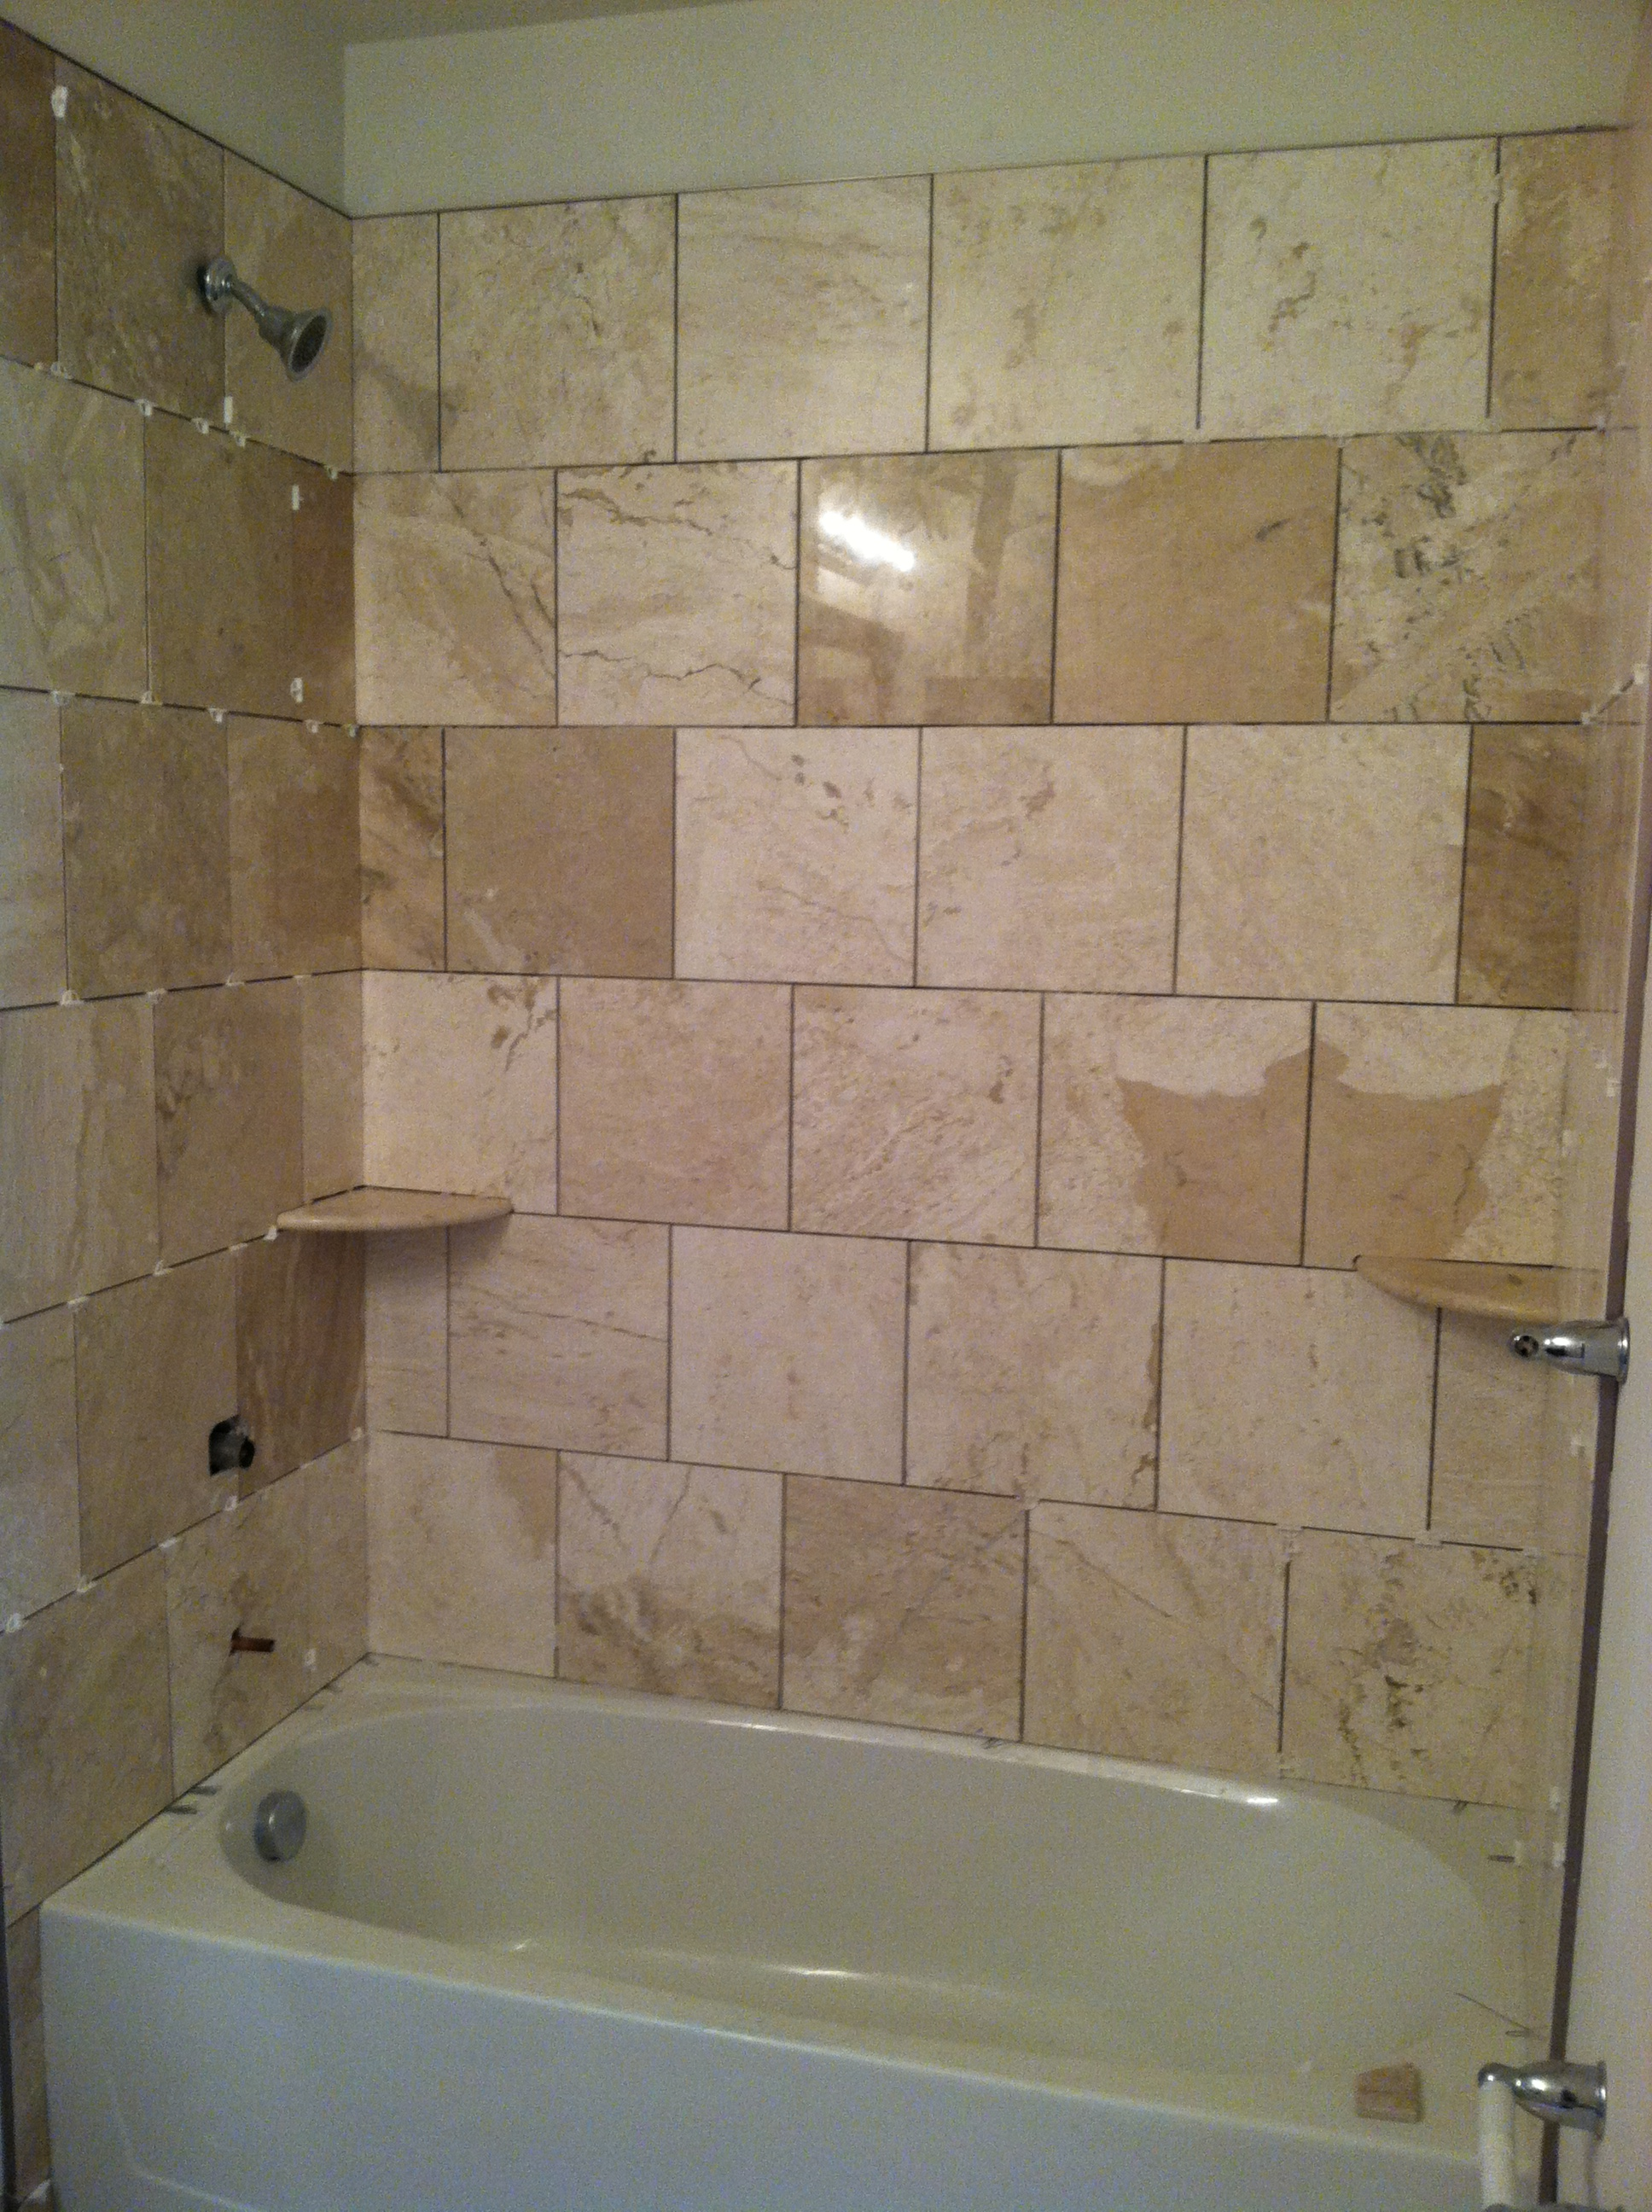 Design With 12 Tiles A Cost Saving Approach To Bath And Shower Tile Next Level Remodeling